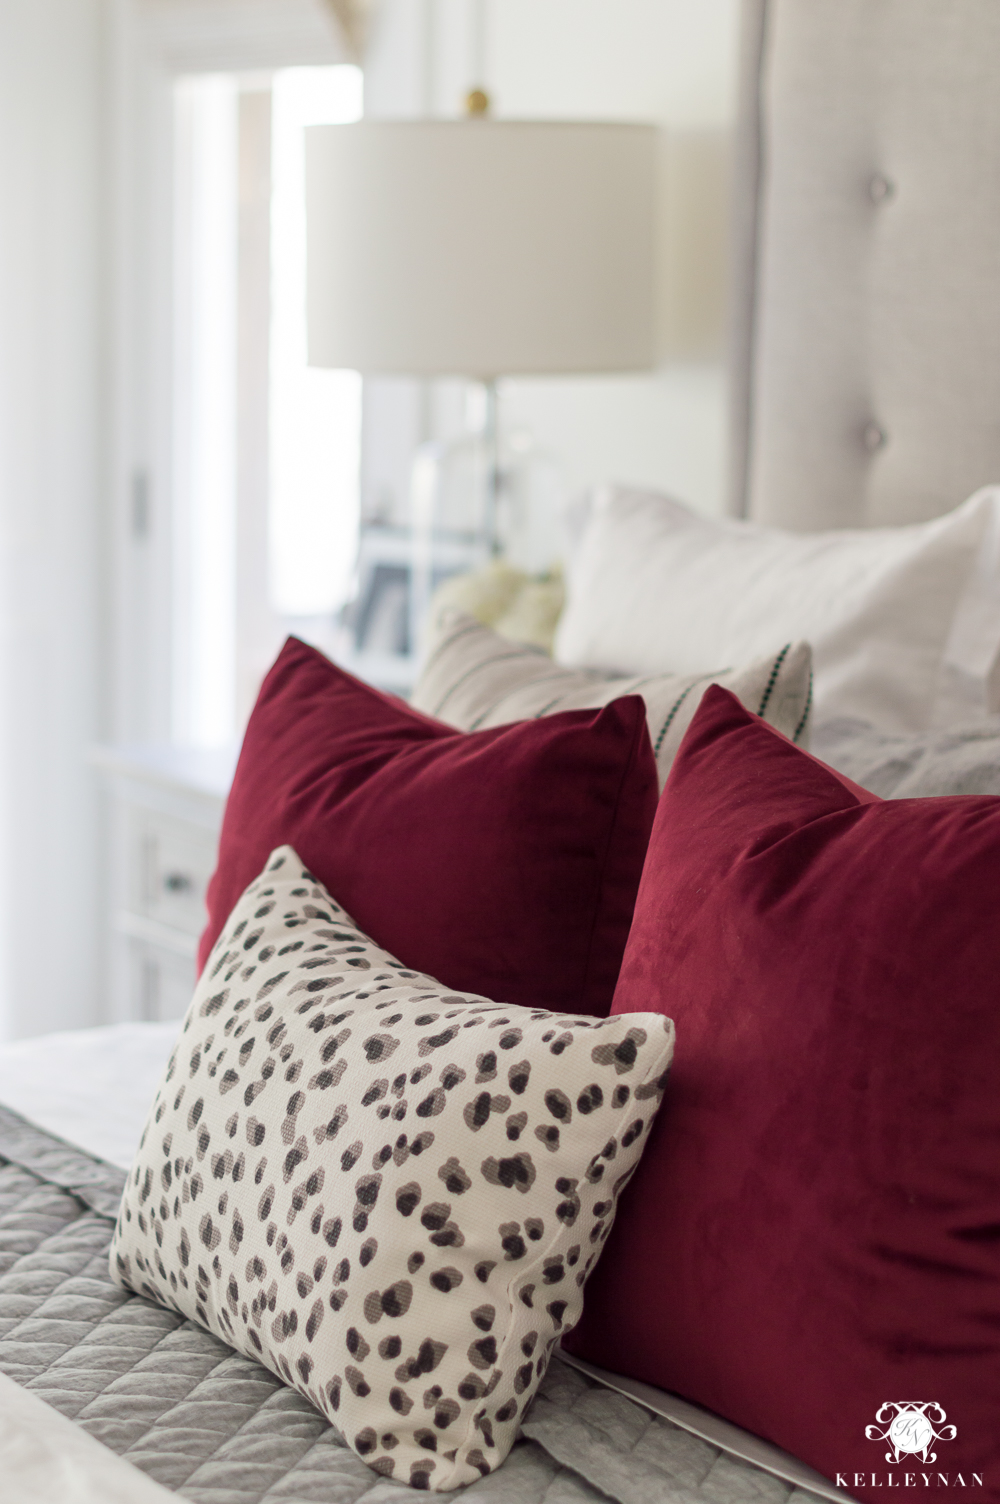 Mixing patterned pillows on the bed with neutral bedding